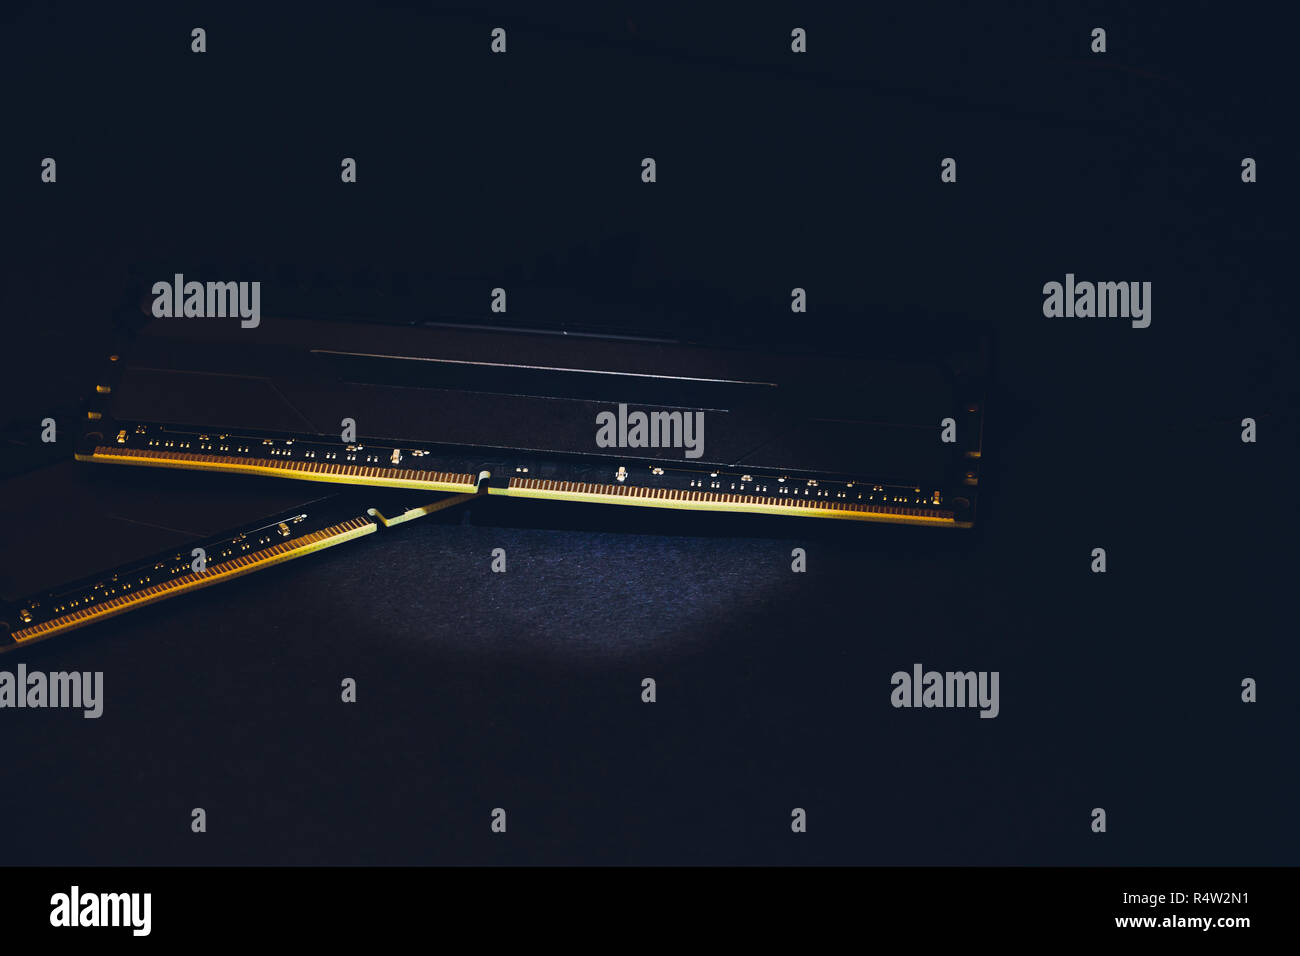 Photo of DDR RAM memory module on black background Macro. - Stock Image